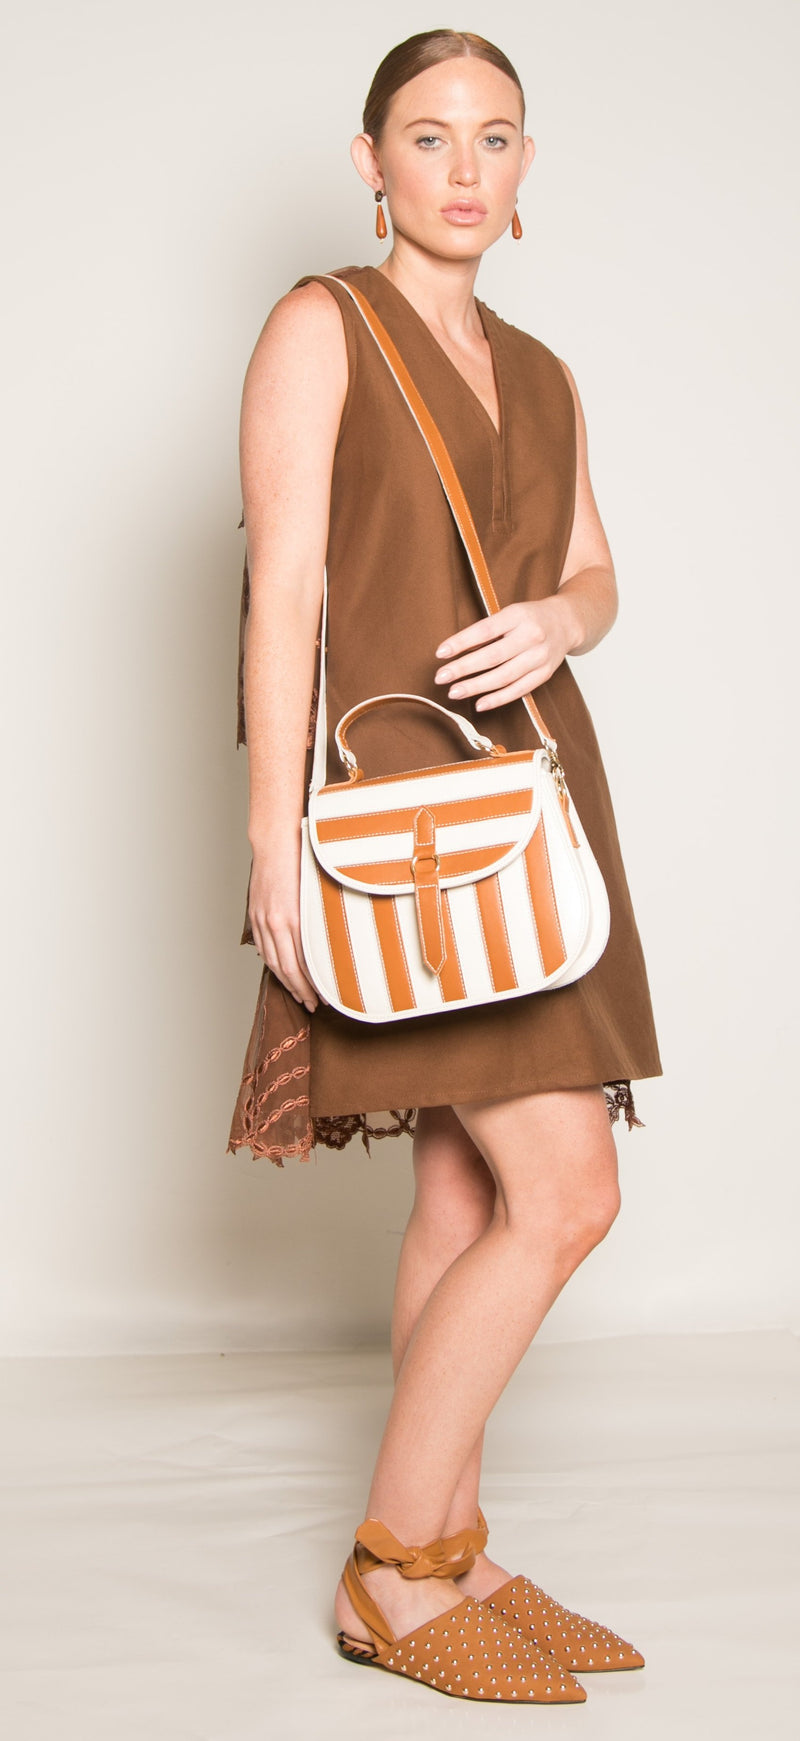 Yarake Leather Flap Bag - Striped Caramel & White